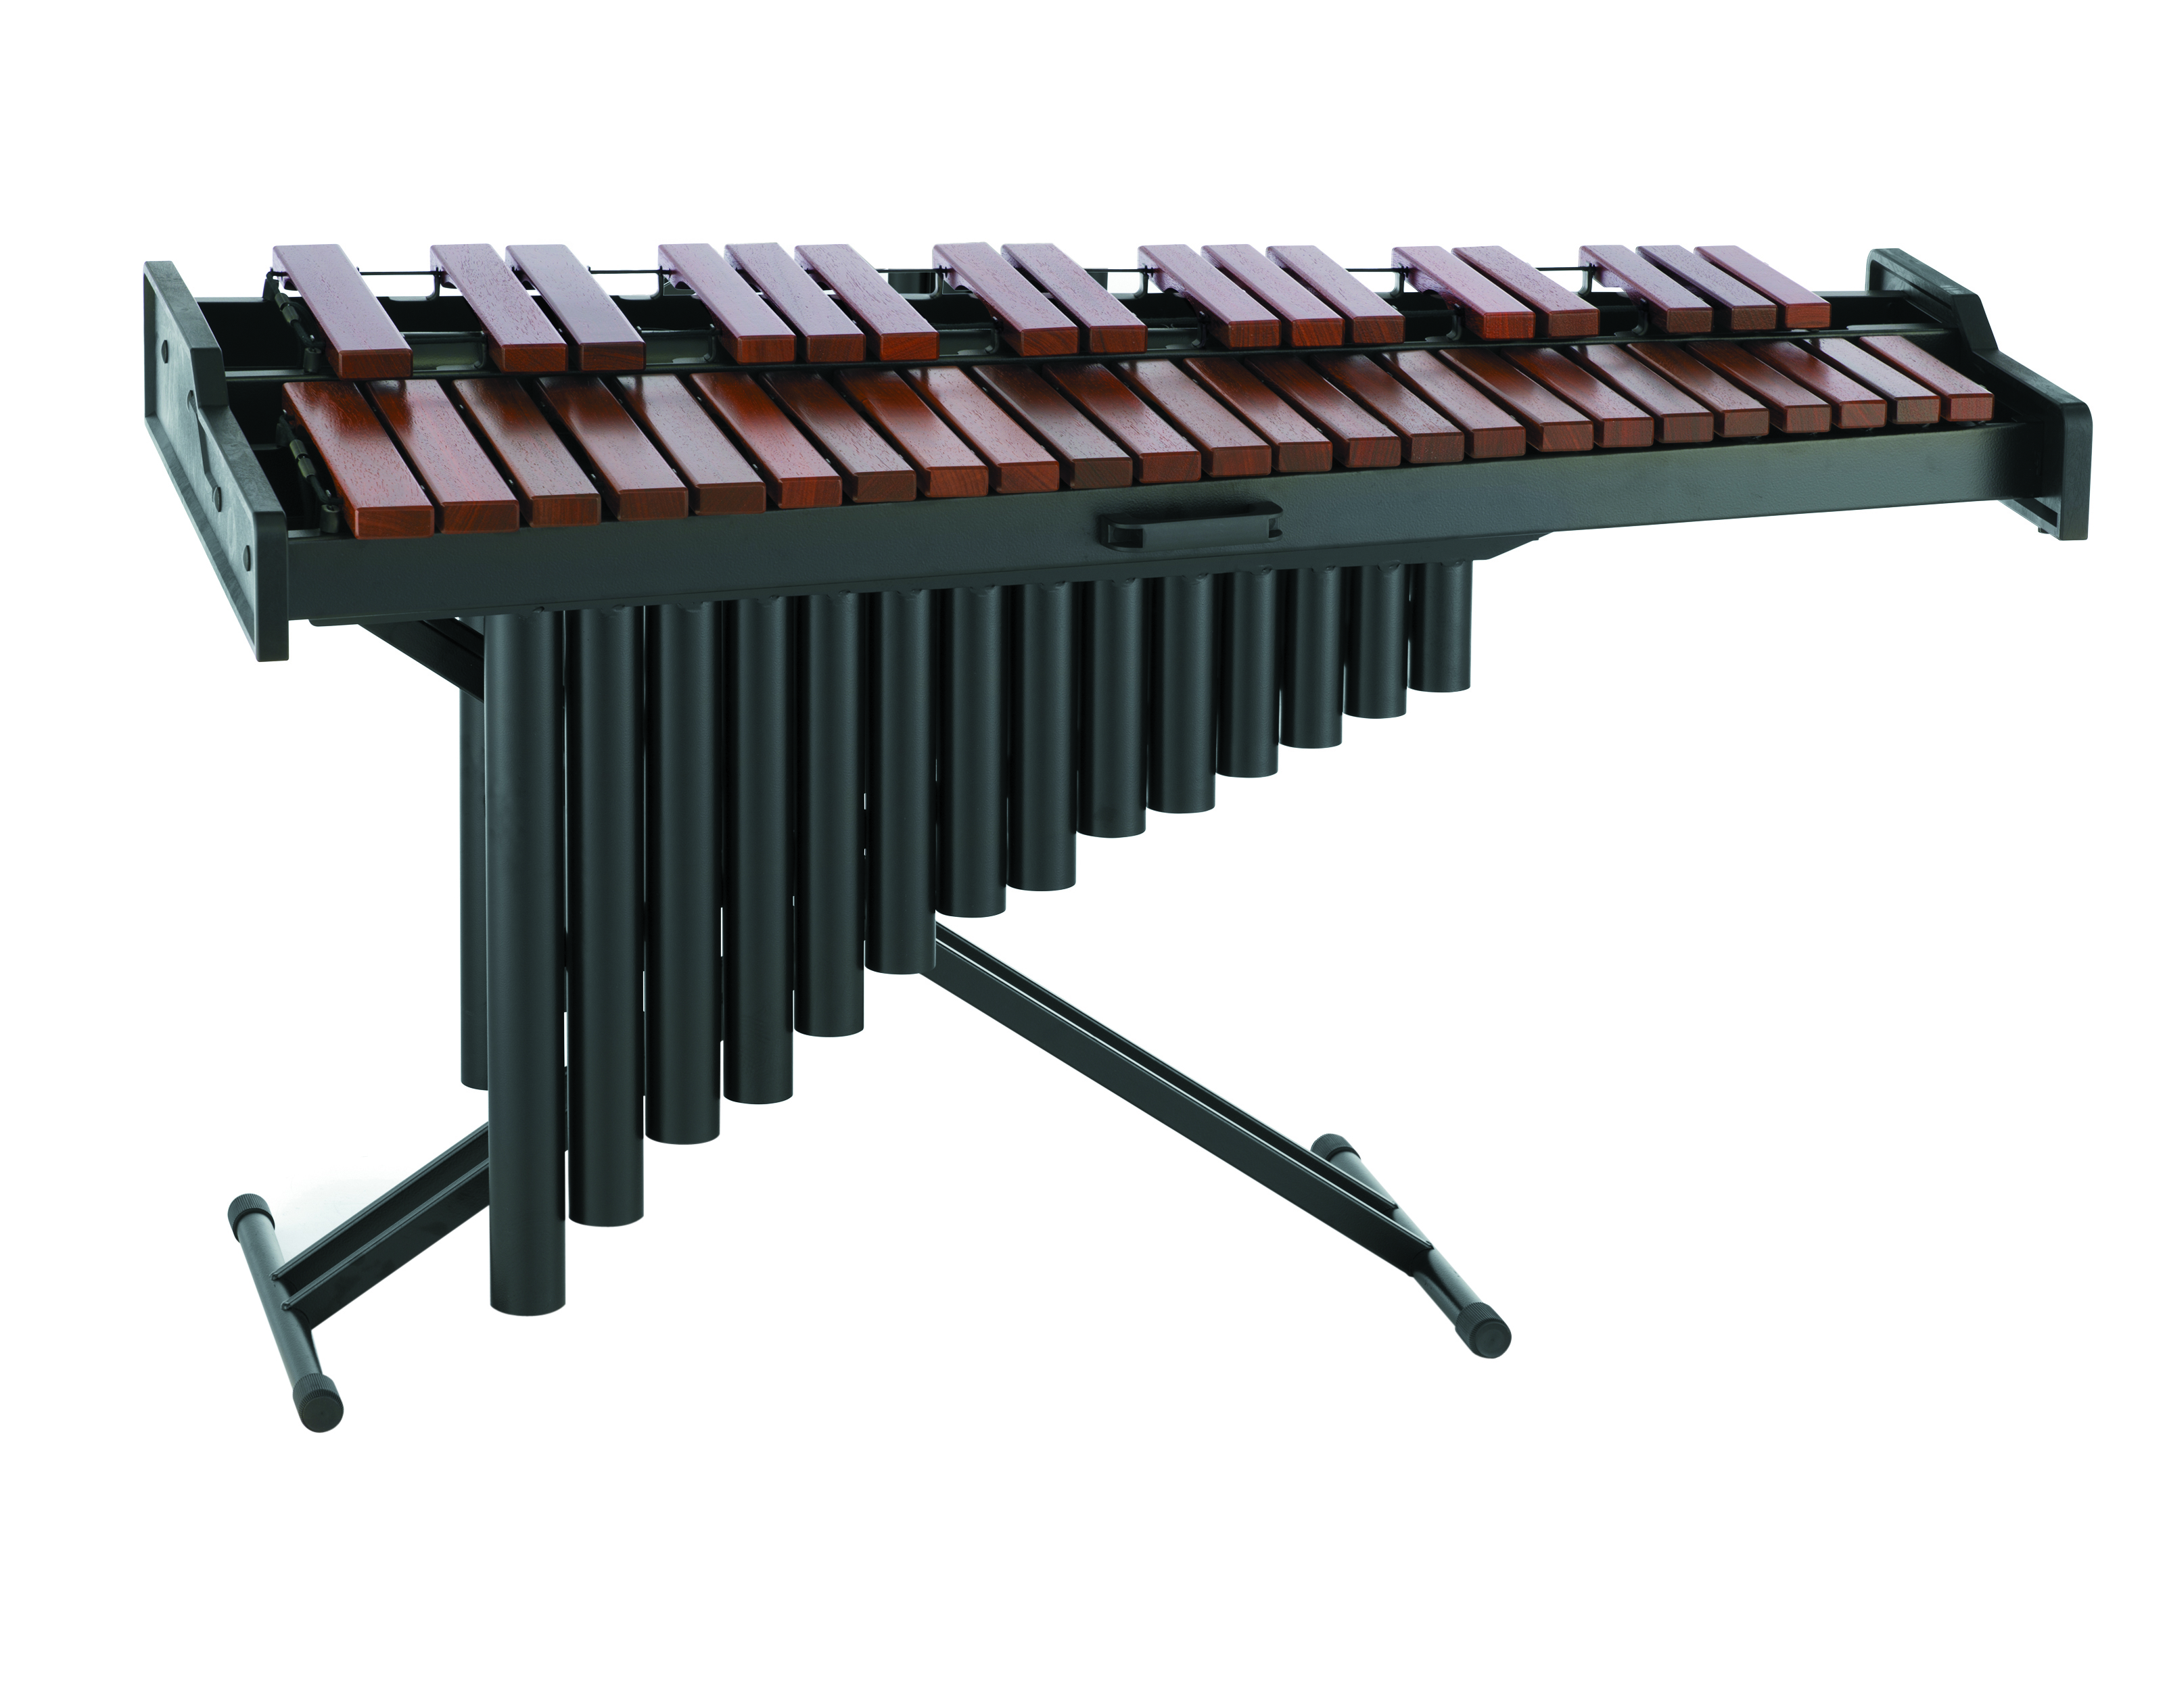 Academy Marimba Junior 3.3 Oct. Padouk